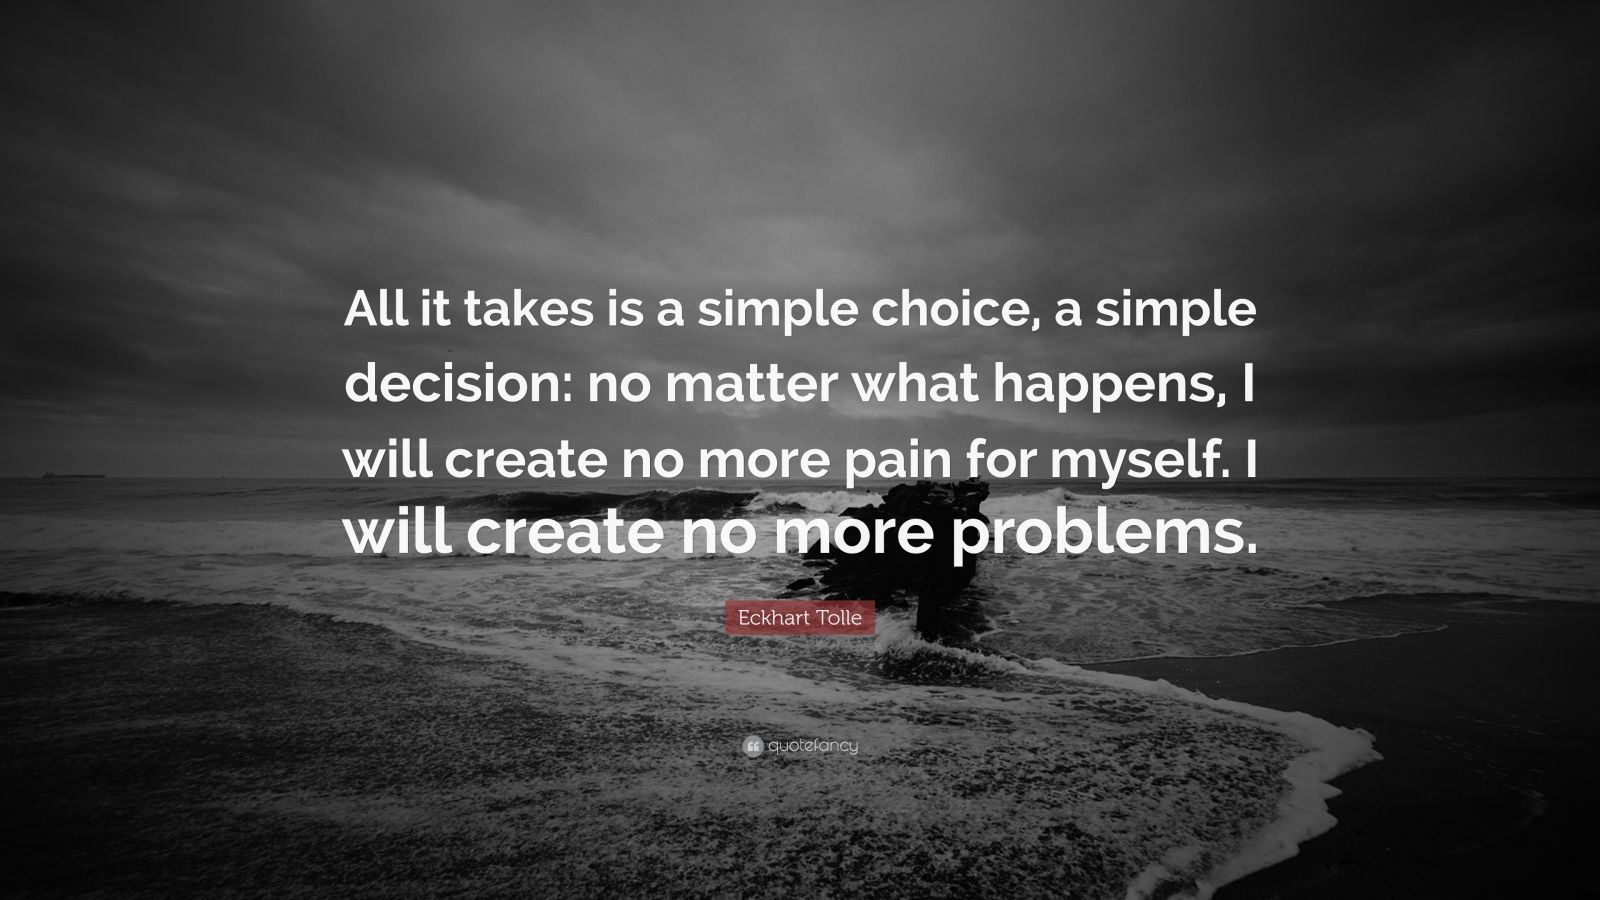 """Eckhart Tolle Quote: """"All it takes is a simple choice, a simple decision: no matter what happens, I will create no more pain for myself. I will create no more problems."""""""